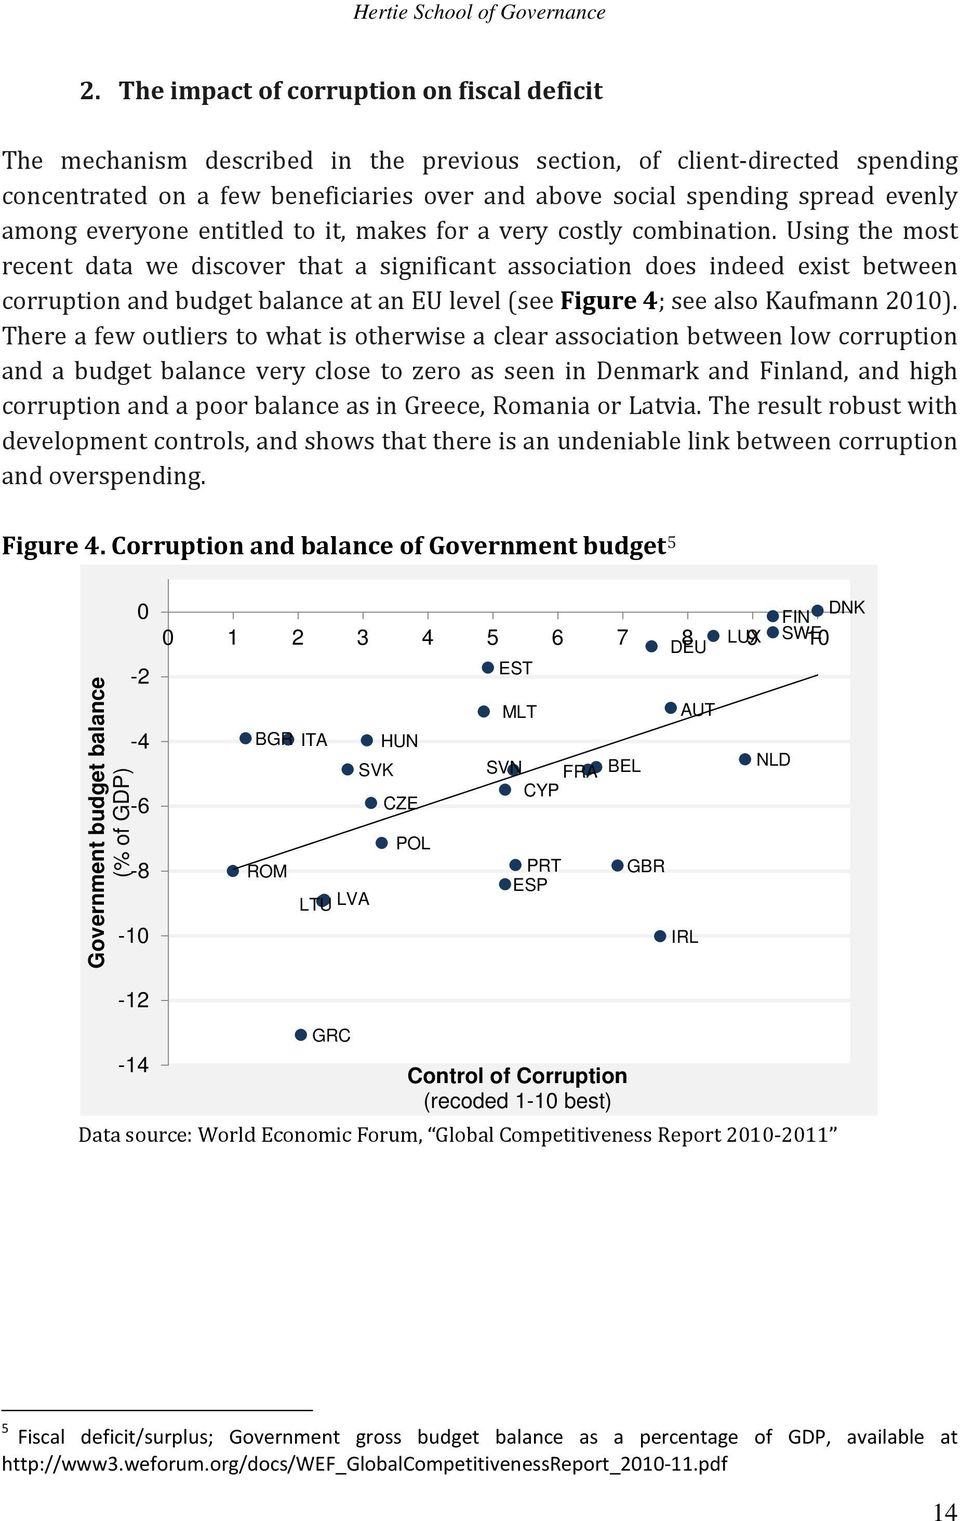 Using the most recent data we discover that a significant association does indeed exist between corruption and budget balance at an EU level (see Figure 4; see also Kaufmann 2010).